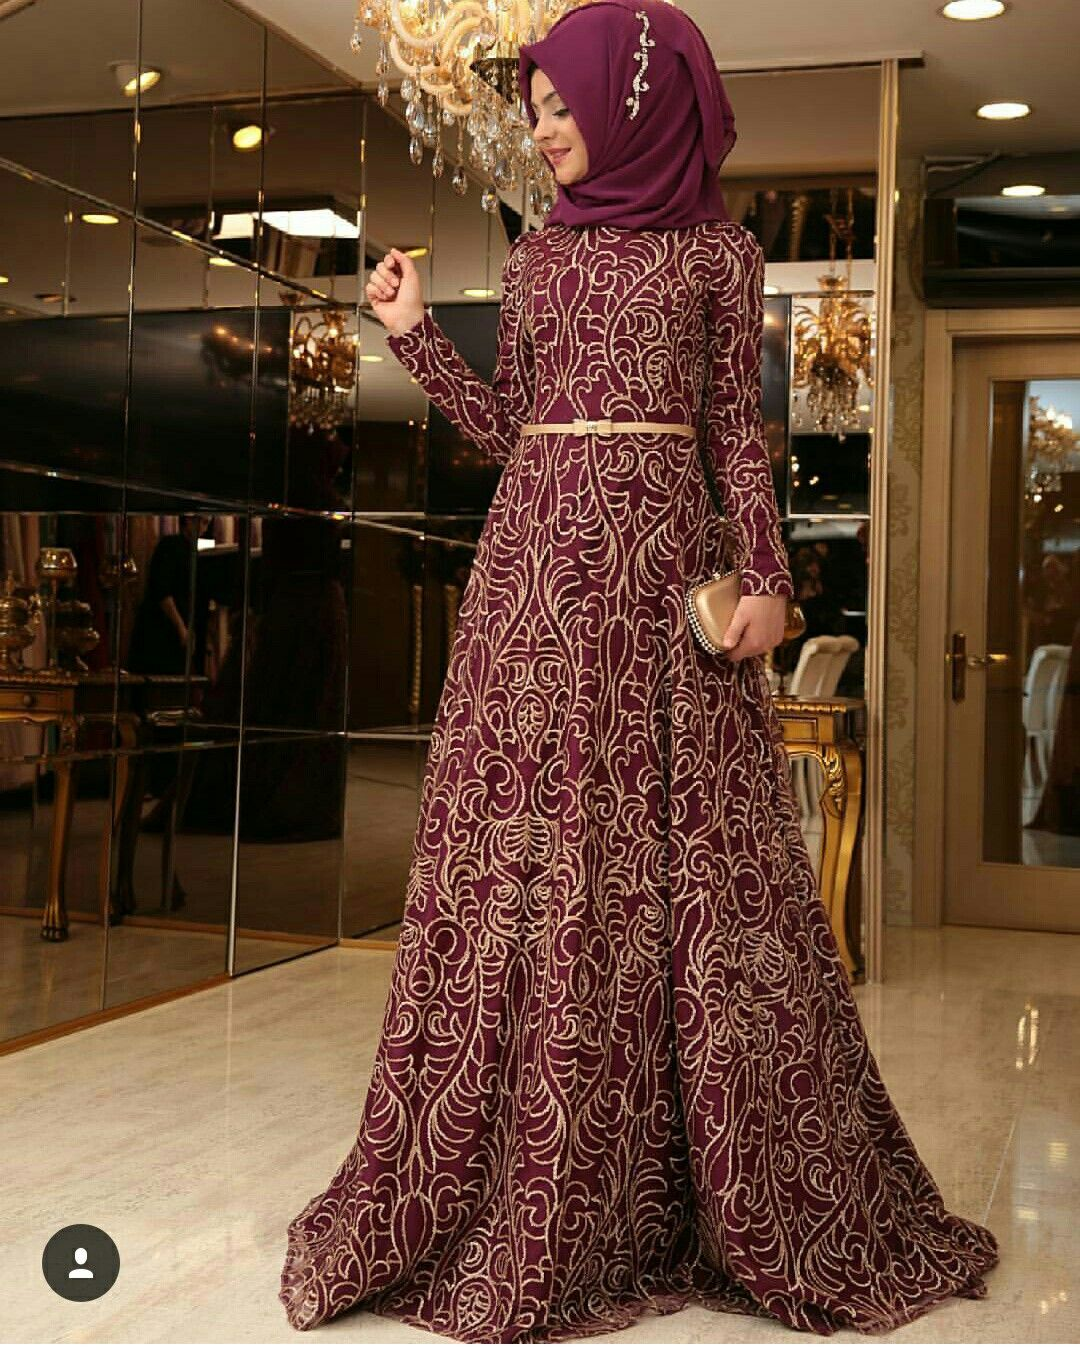 Pin by zeynep on animatie pinterest wedding abaya gowns and